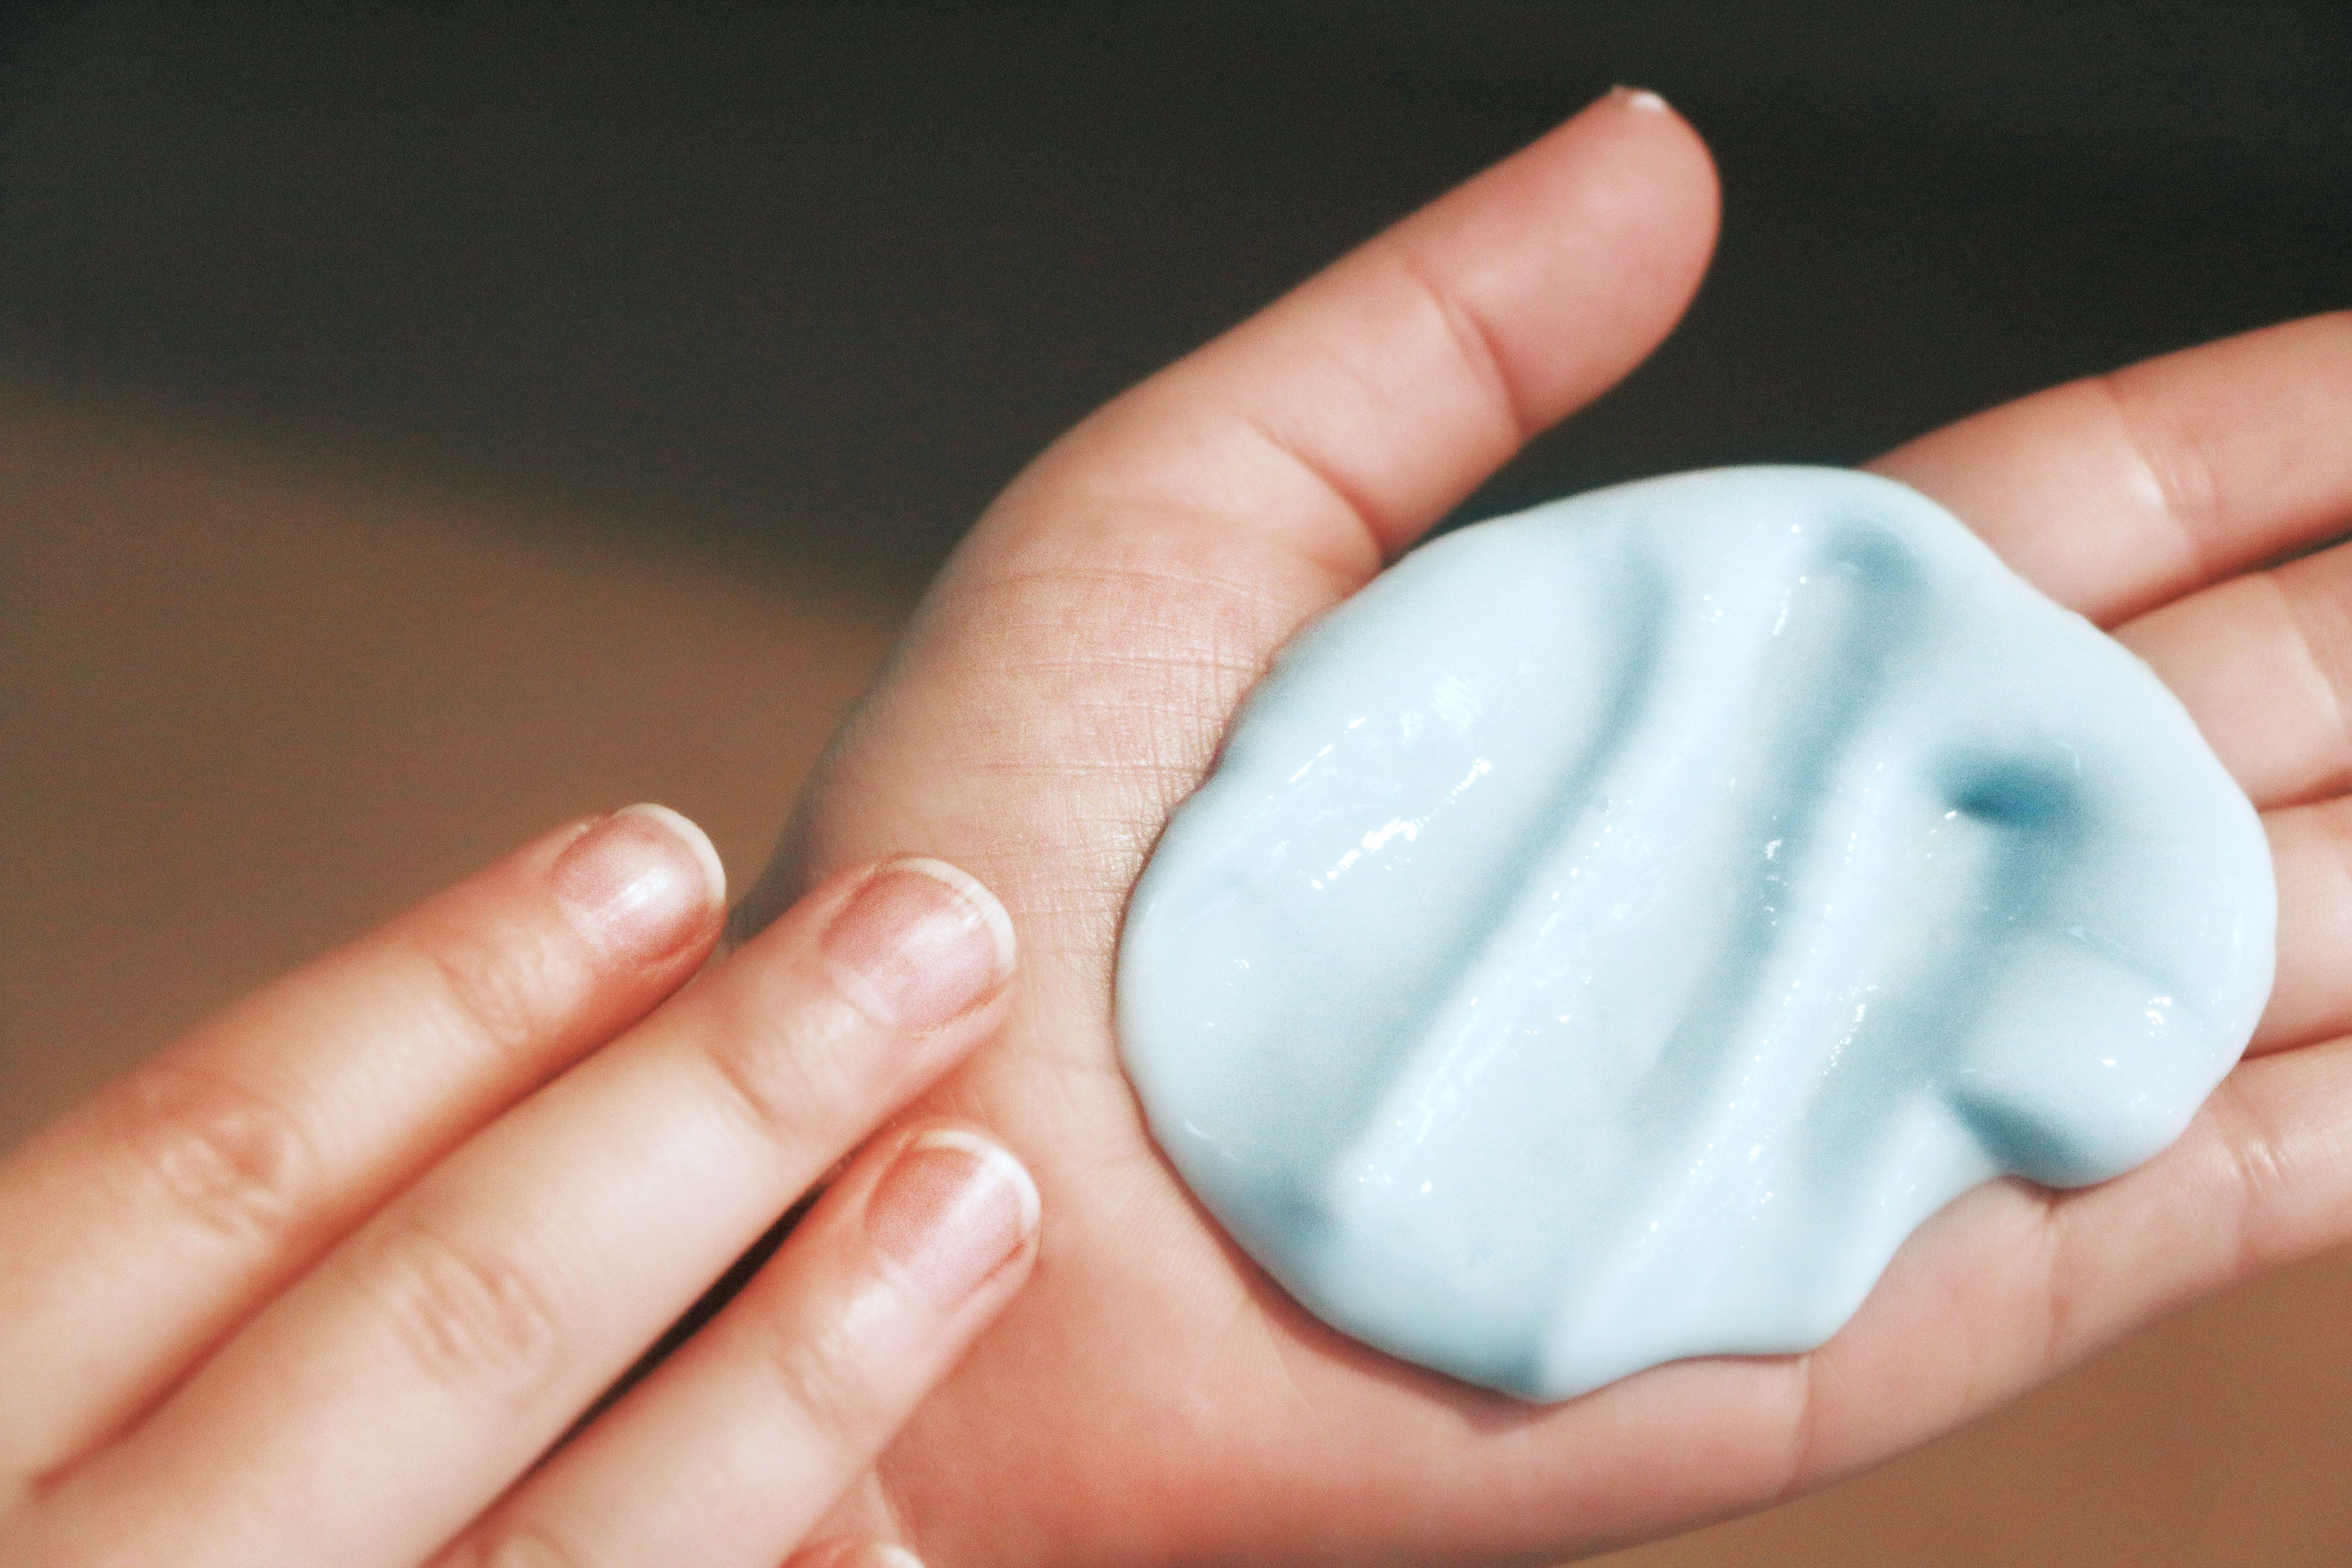 How To Make Silly Putty With Borax Pinterest Silly Putty And Child